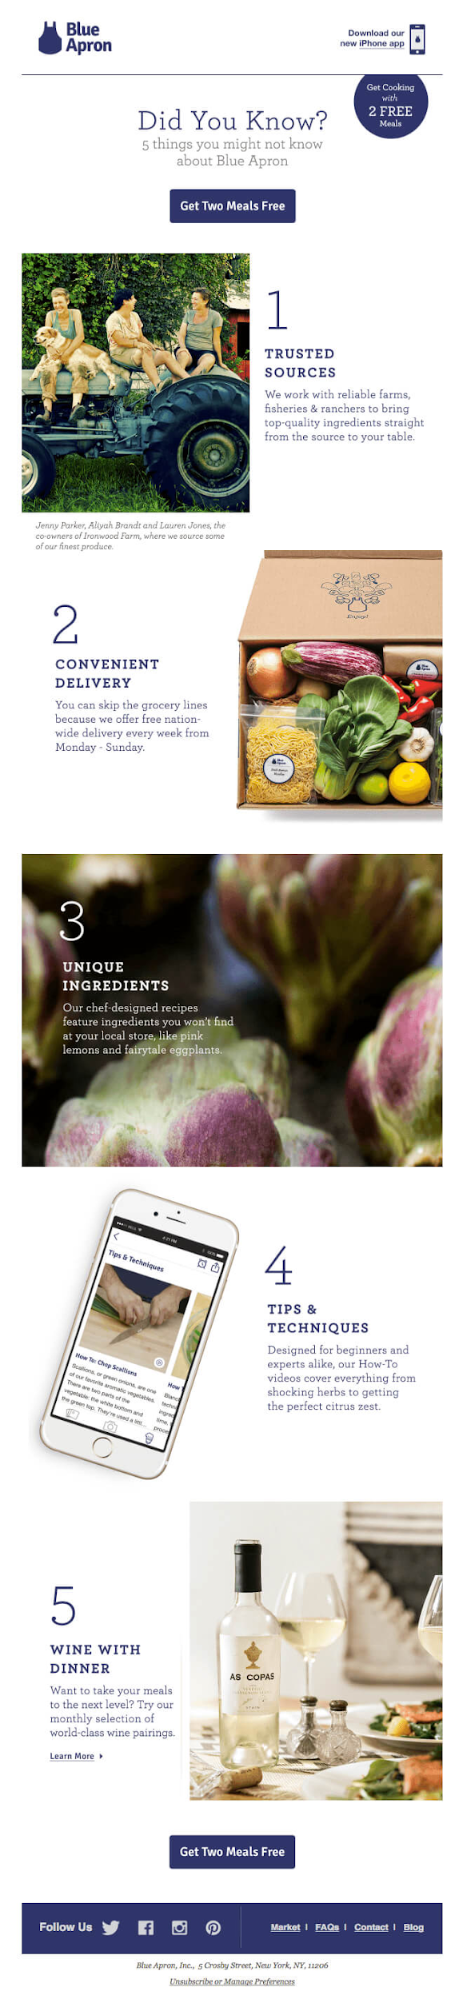 Creative content ideas: campaign by Blue Apron